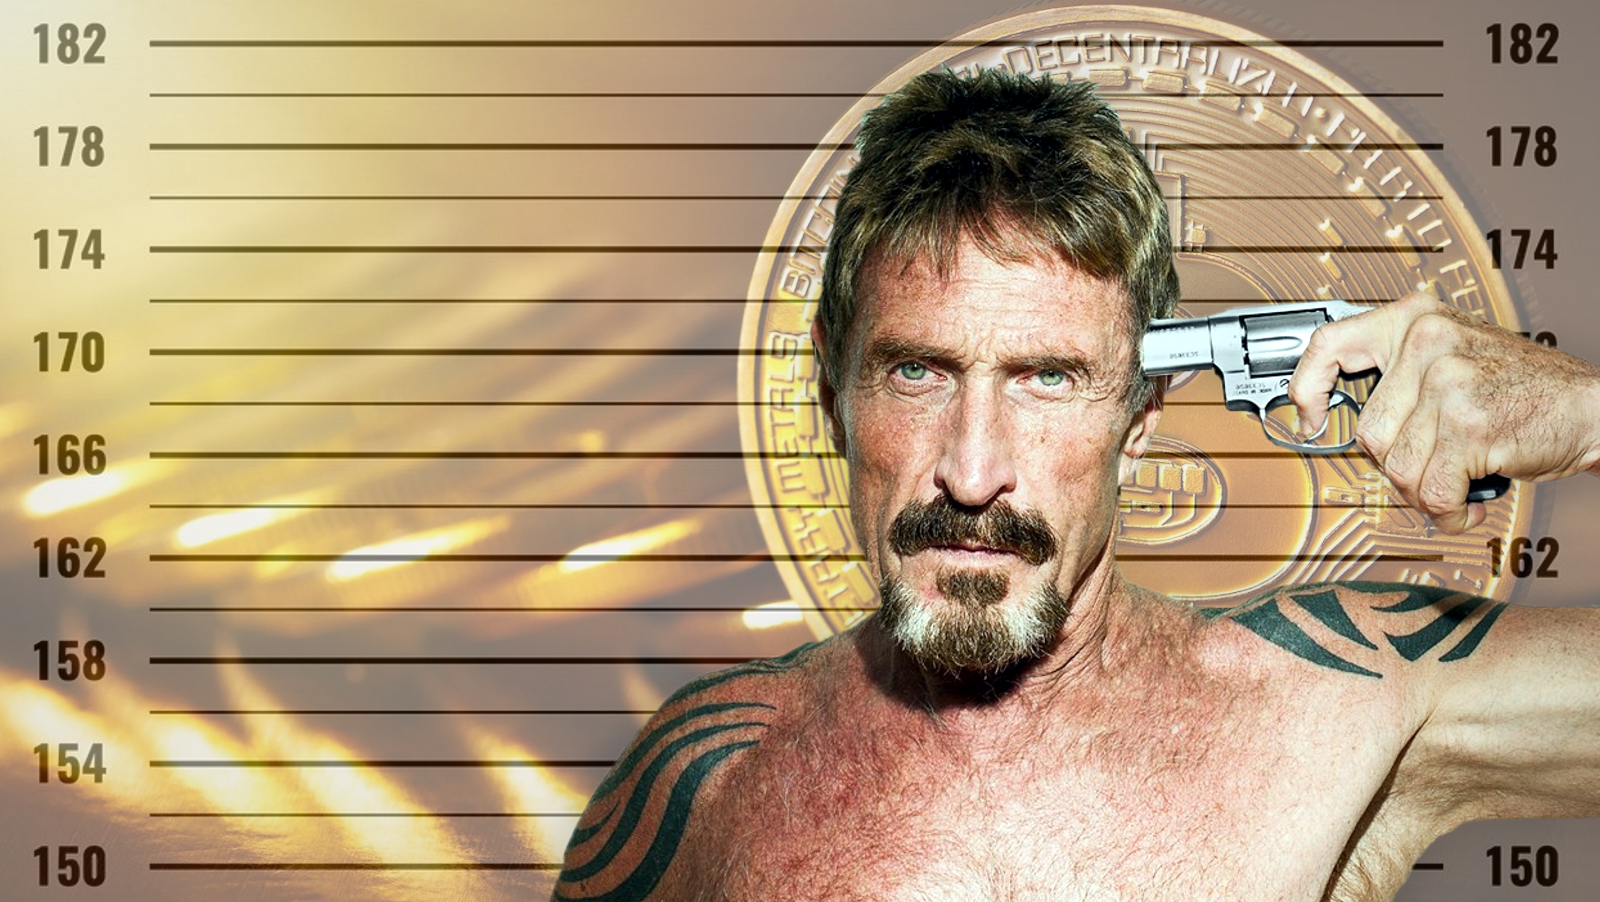 Anti-scaling cryptos use John McAfee's FUD to sling mud at Bitcoin SV